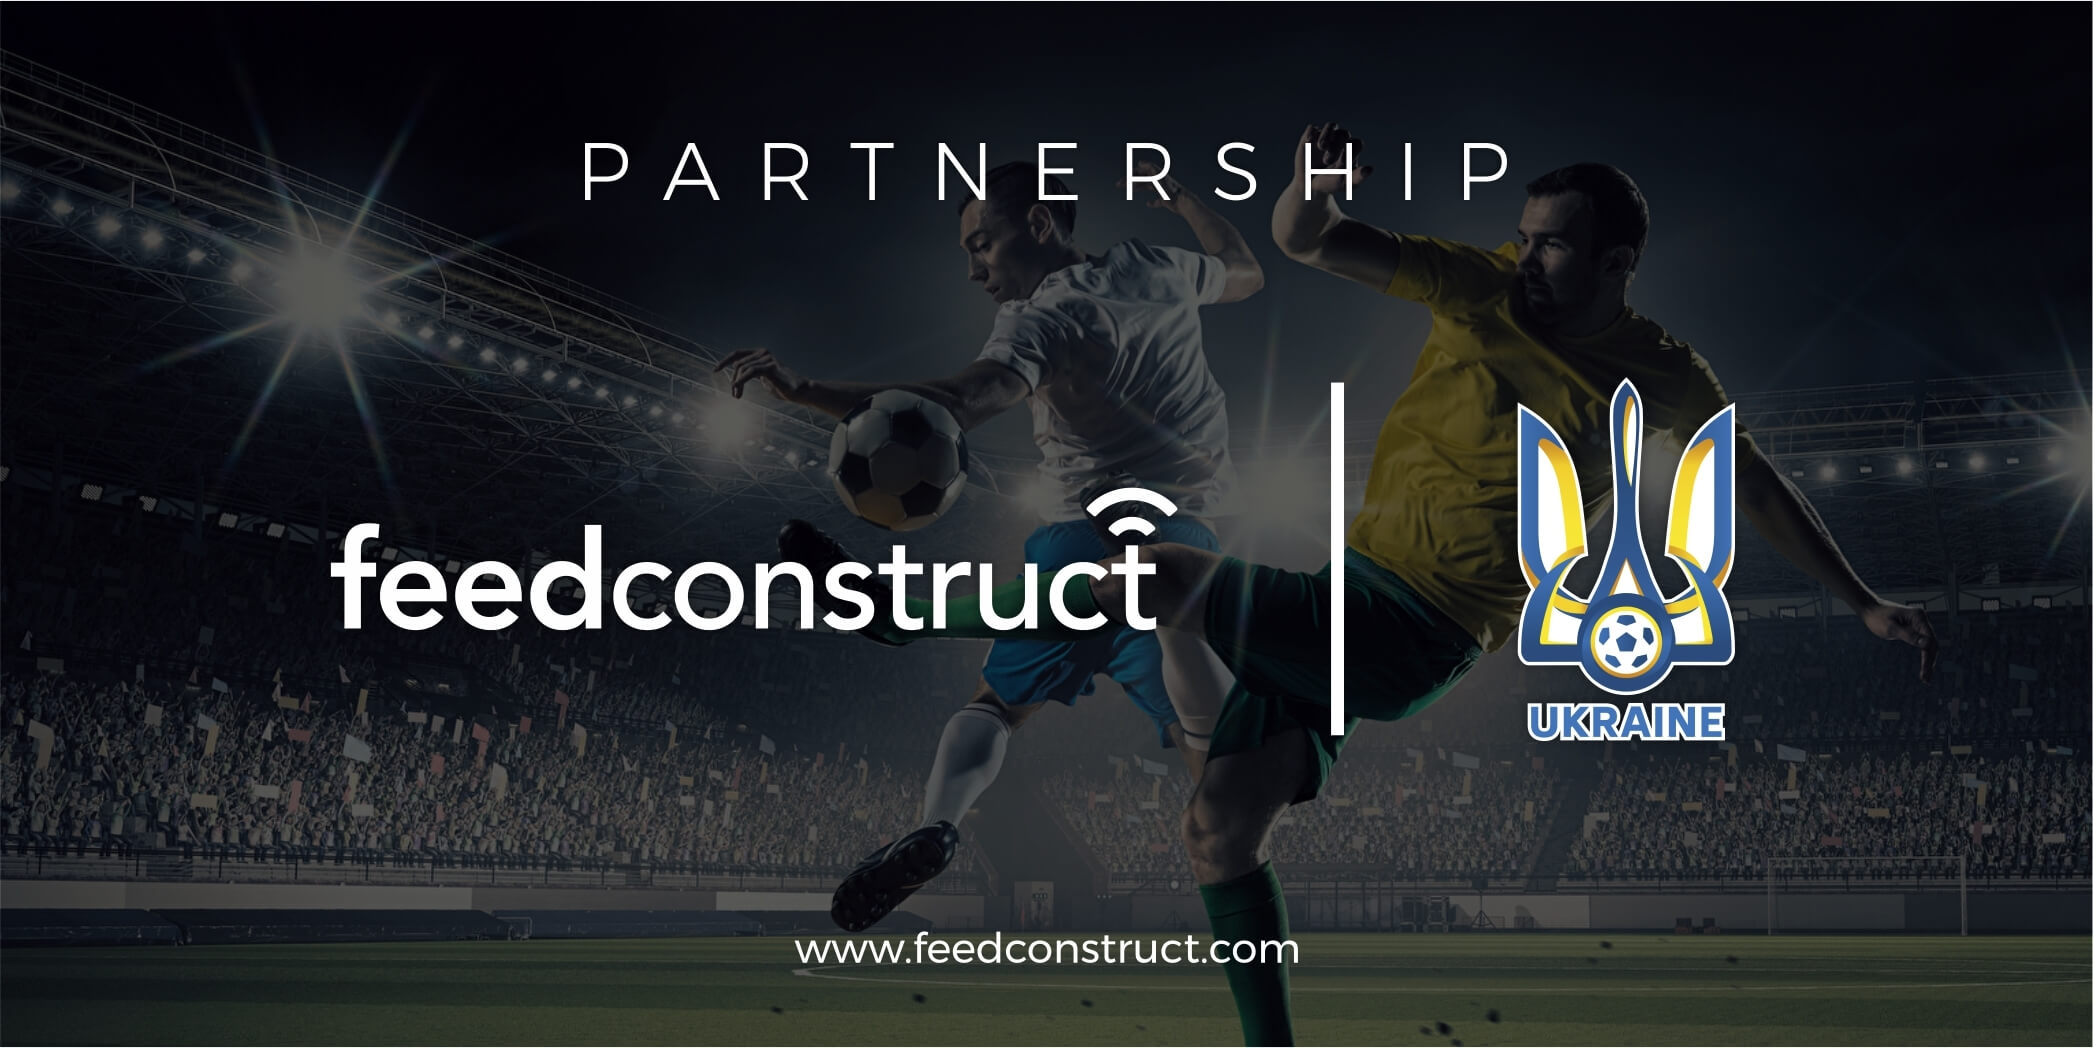 FeedConstruct signs deal on exclusive basis with The Ukrainian Association of Football